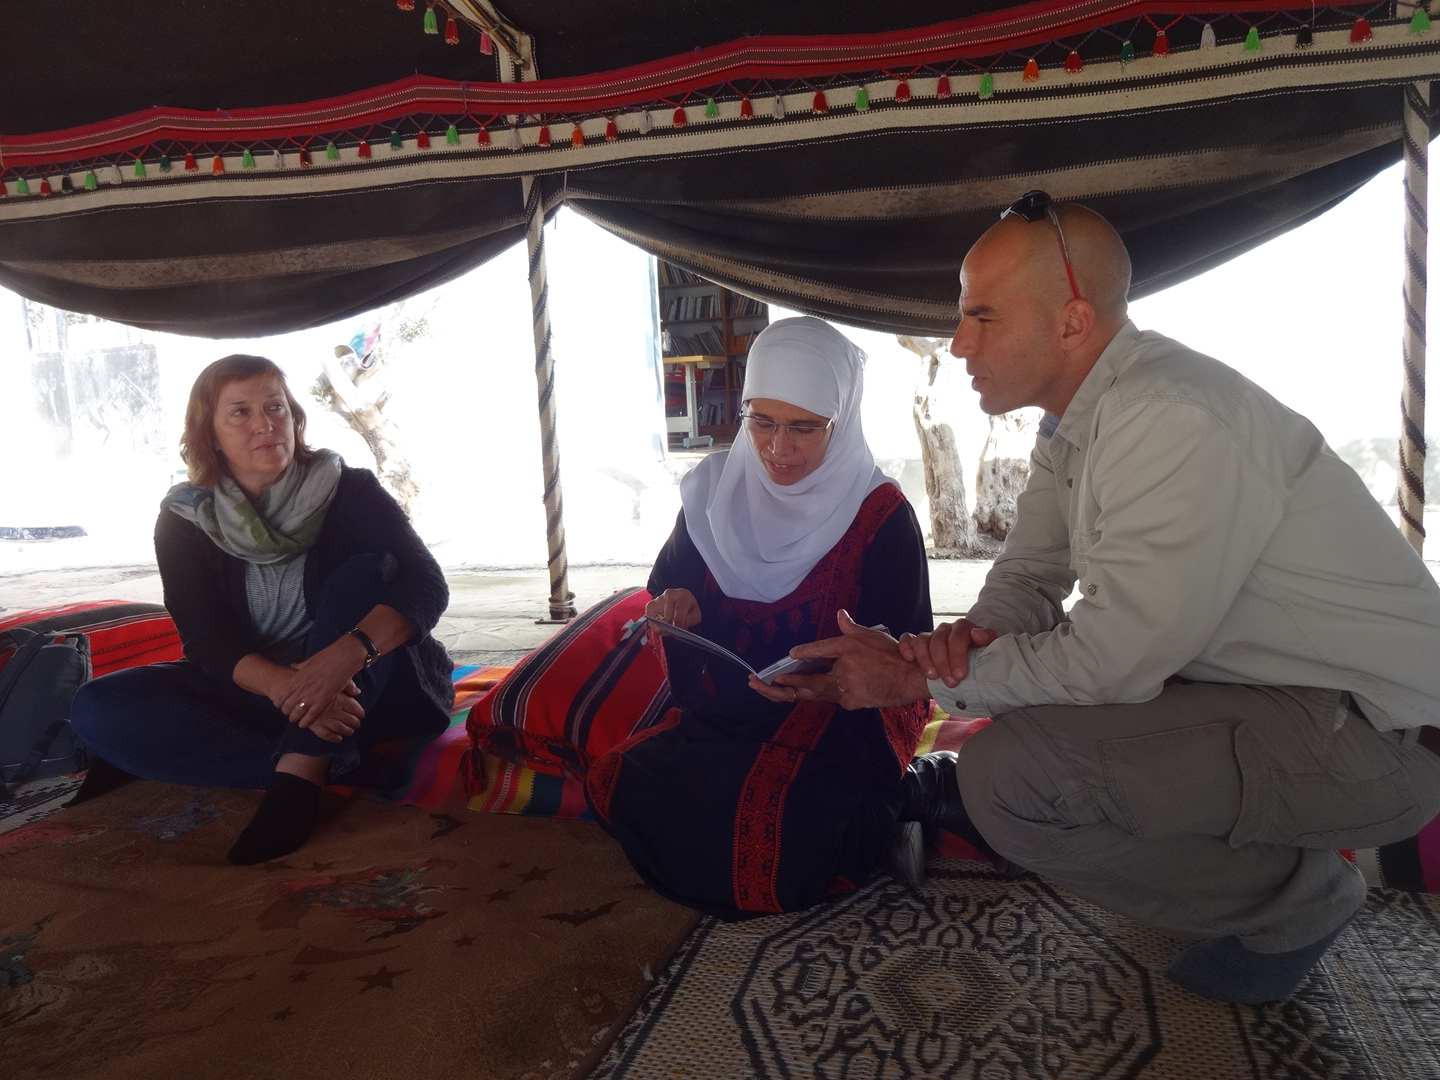 Diana with our guide, Jossef Idan, and Na'ama ElSana of the Women's Embroidery Project at Lakiya, featured in Art & Design.